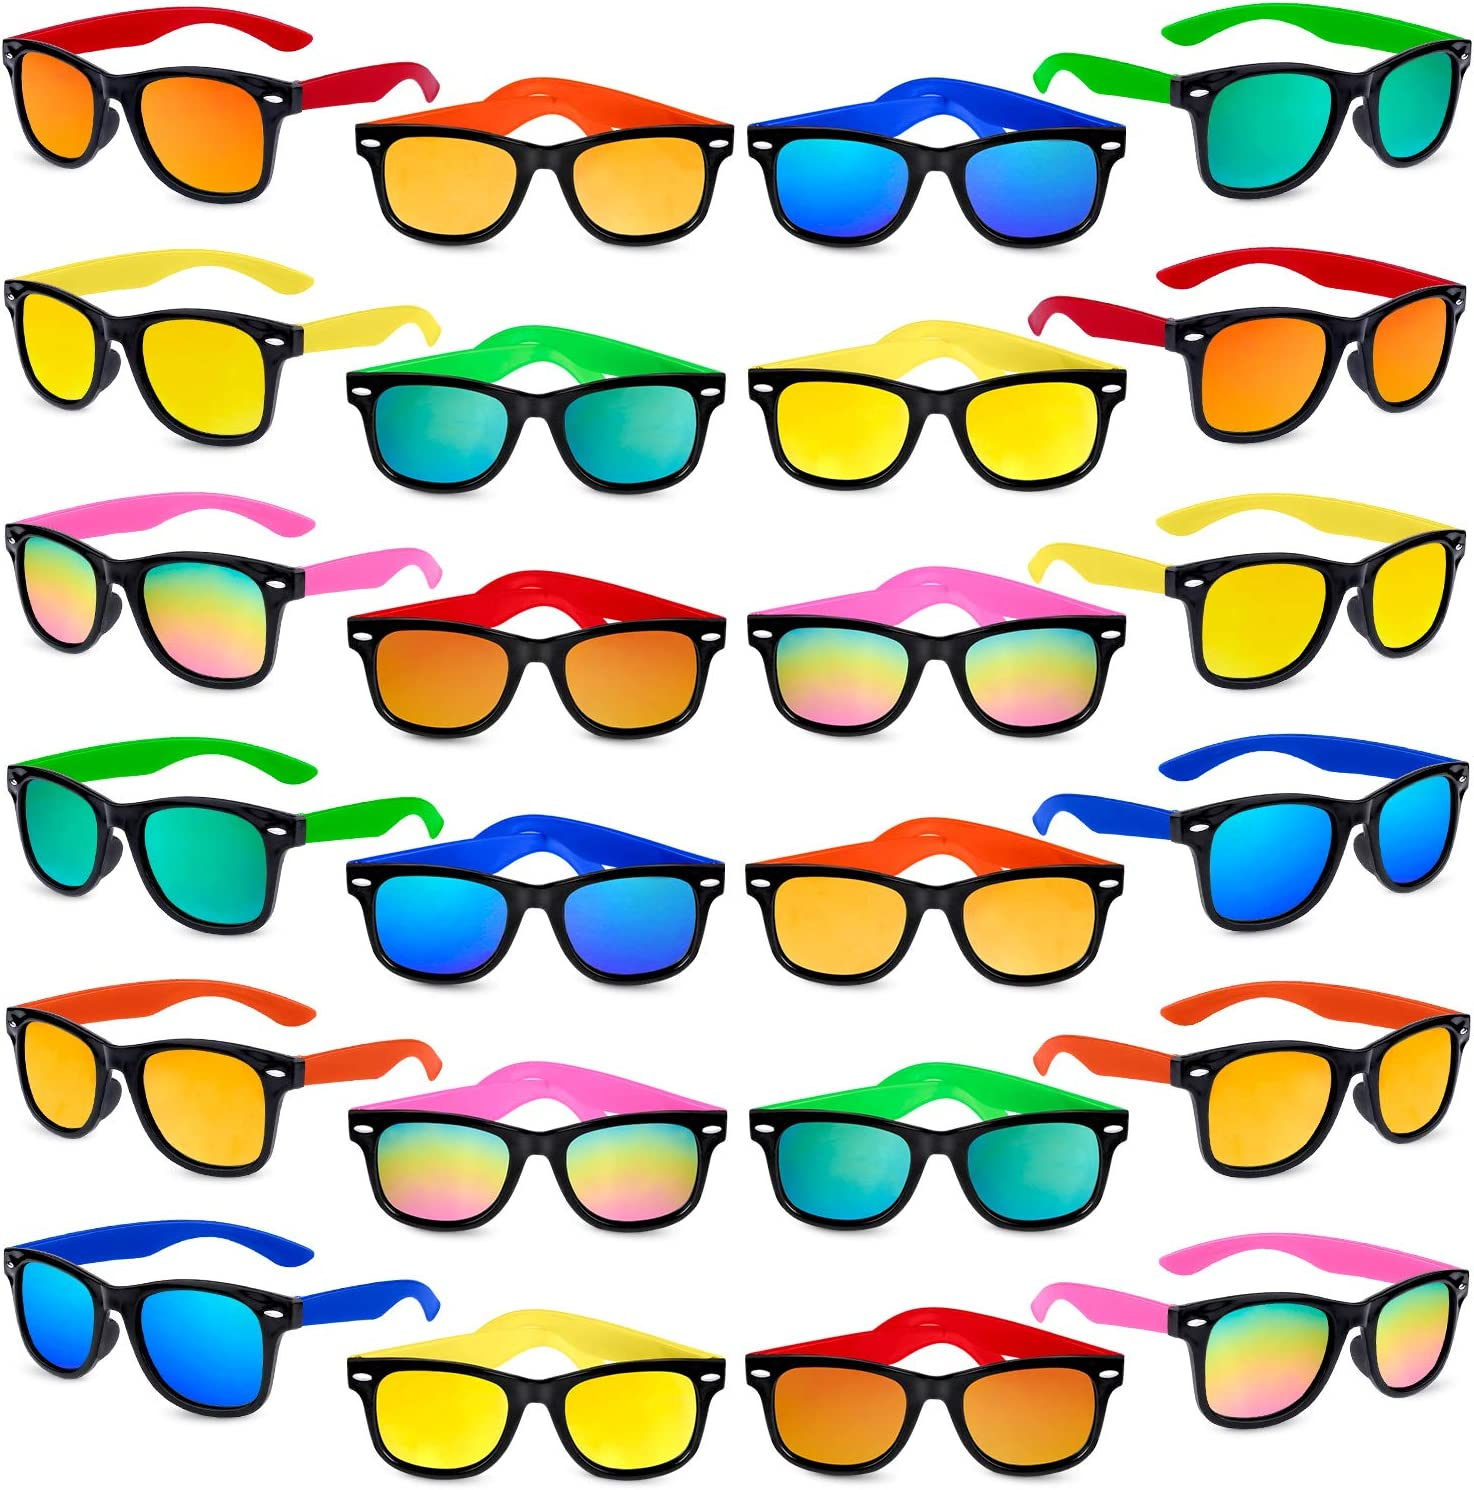 24Pack Neon Sunglasses with UV 400 Protected in B Kids Sunglasses Party Favors